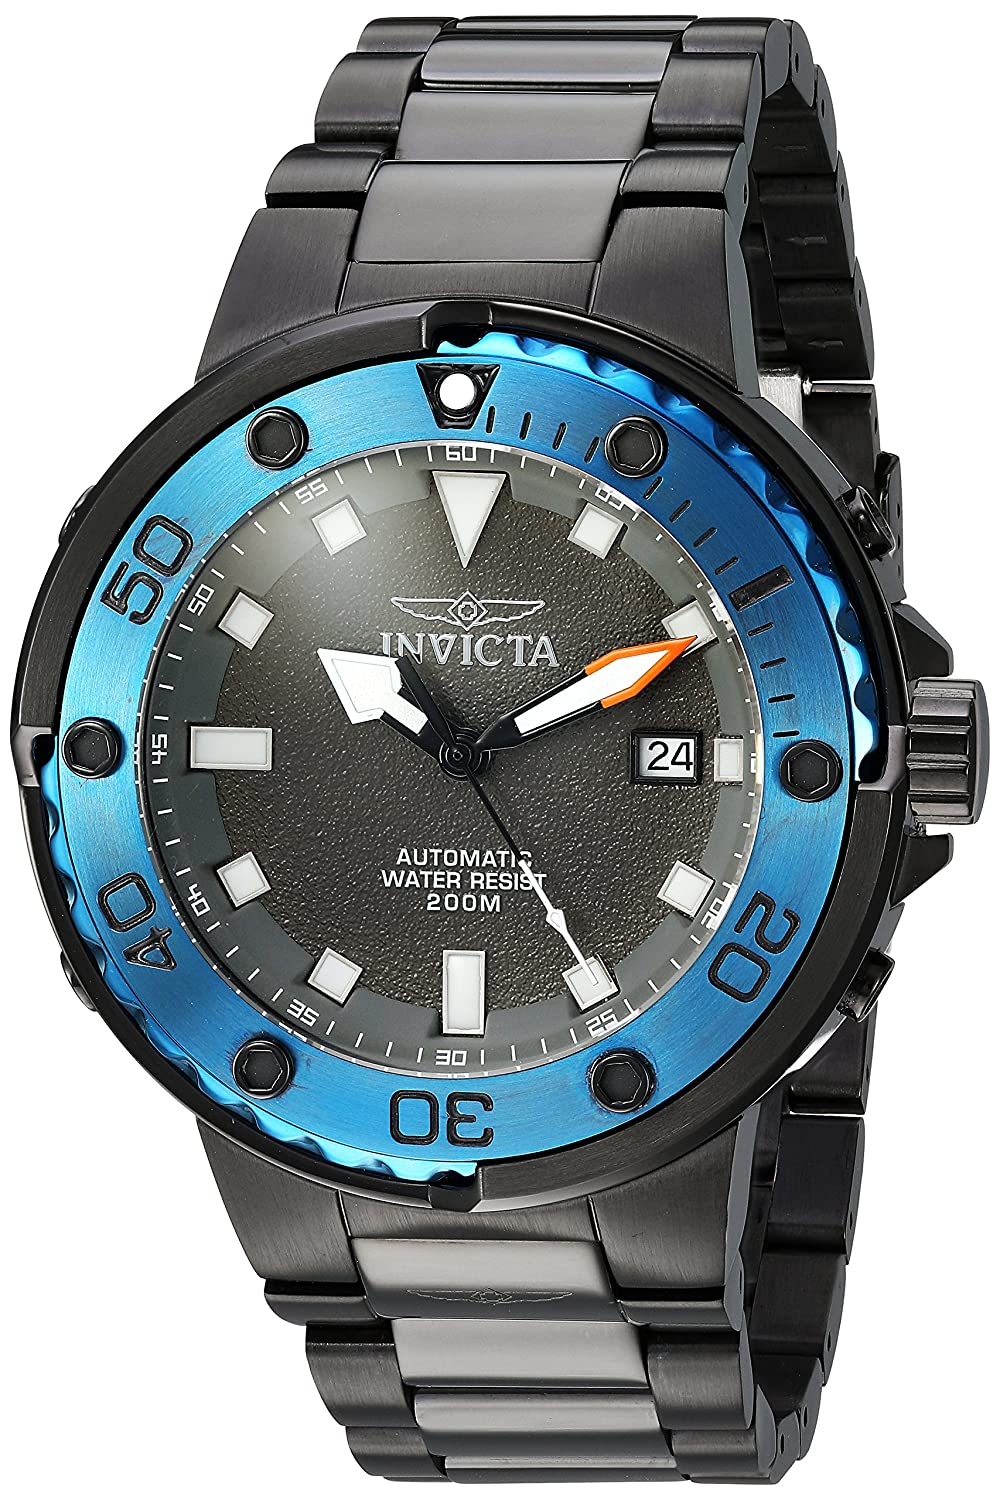 Invicta Men s Pro Diver Automatic-self-Wind Diving Watch with Stainless-Steel Strap, Black, 26 Model 24466